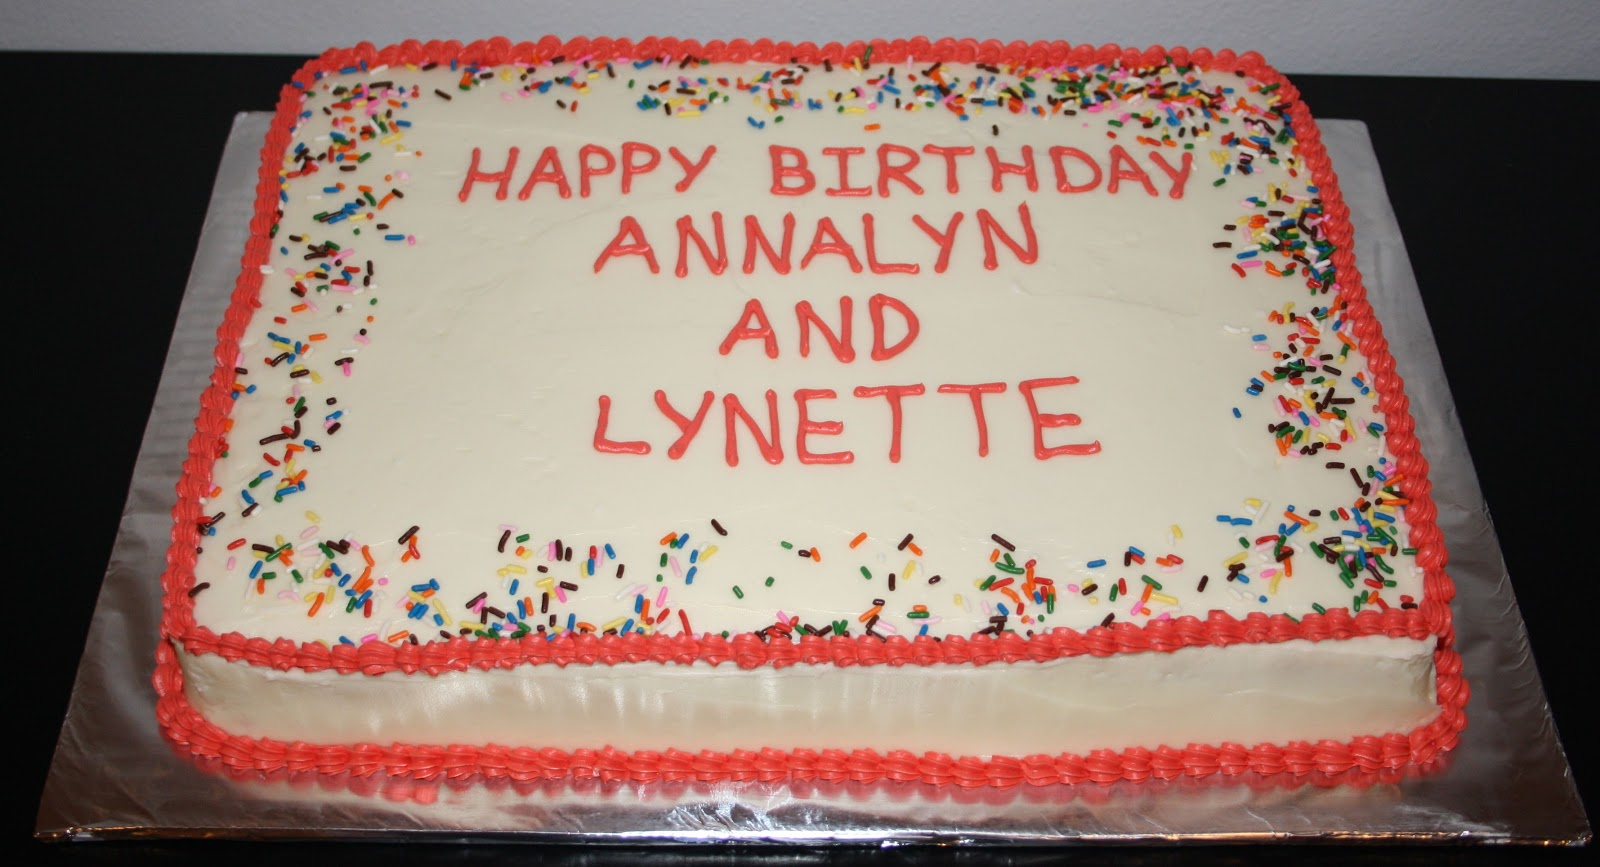 Jacqueline S Sweet Shop Happy Birthday Annalyn And Lynette